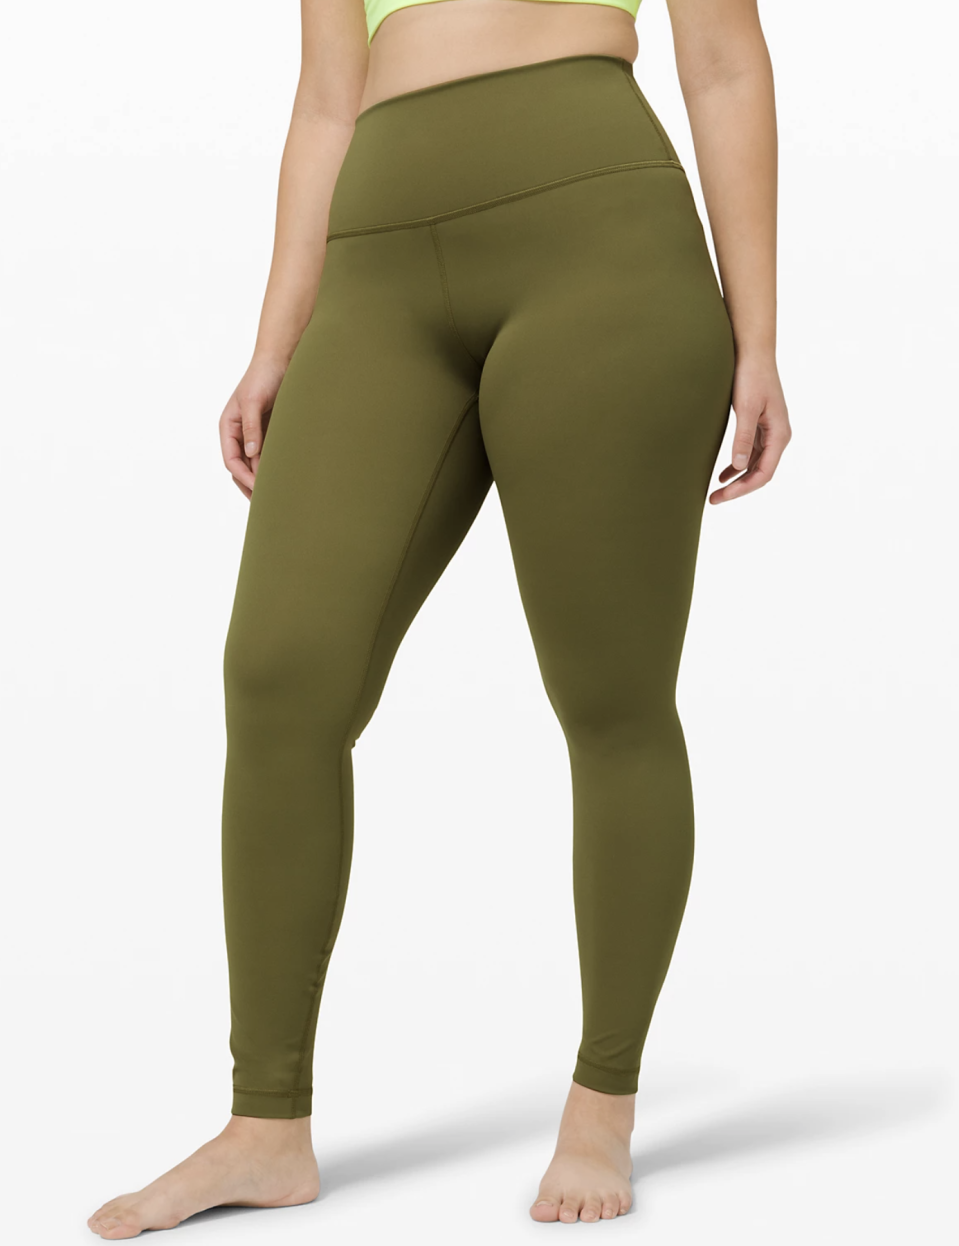 "<p><strong>Lululemon</strong></p><p>lululemon.com</p><p><a href=""https://go.redirectingat.com?id=74968X1596630&url=https%3A%2F%2Fshop.lululemon.com%2Fp%2Fwomen-pants%2FWunder-Under-HR-Fullux-MD%2F_%2Fprod8660068&sref=https%3A%2F%2Fwww.seventeen.com%2Ffashion%2Fg34041215%2Flululemon-black-friday-deals-2020%2F"" rel=""nofollow noopener"" target=""_blank"" data-ylk=""slk:Shop Now"" class=""link rapid-noclick-resp"">Shop Now</a></p><p><strong><del>$98</del> $69 (30% off)</strong></p><p>Pretty jewel tones <em>and </em>they're only $69? These are the gold standard of <a href=""https://go.redirectingat.com?id=74968X1596630&url=https%3A%2F%2Fshop.lululemon.com%2F&sref=https%3A%2F%2Fwww.seventeen.com%2Ffashion%2Fg34041215%2Flululemon-black-friday-deals-2020%2F"" rel=""nofollow noopener"" target=""_blank"" data-ylk=""slk:Lululemon"" class=""link rapid-noclick-resp"">Lululemon</a> finds.<br></p>"